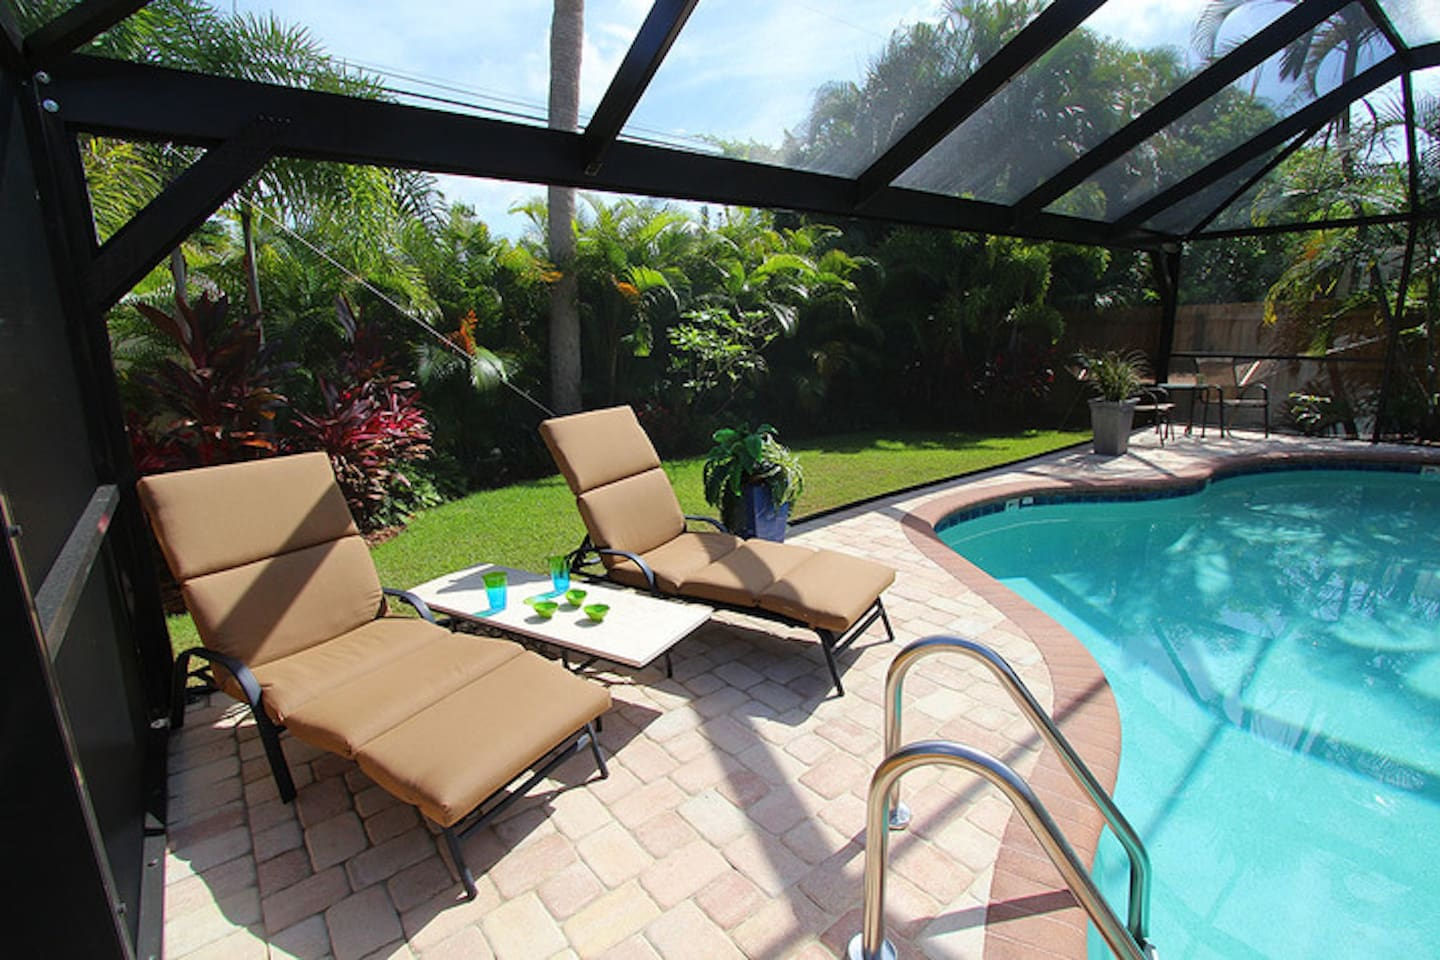 Relax by the pool...you deserve it!